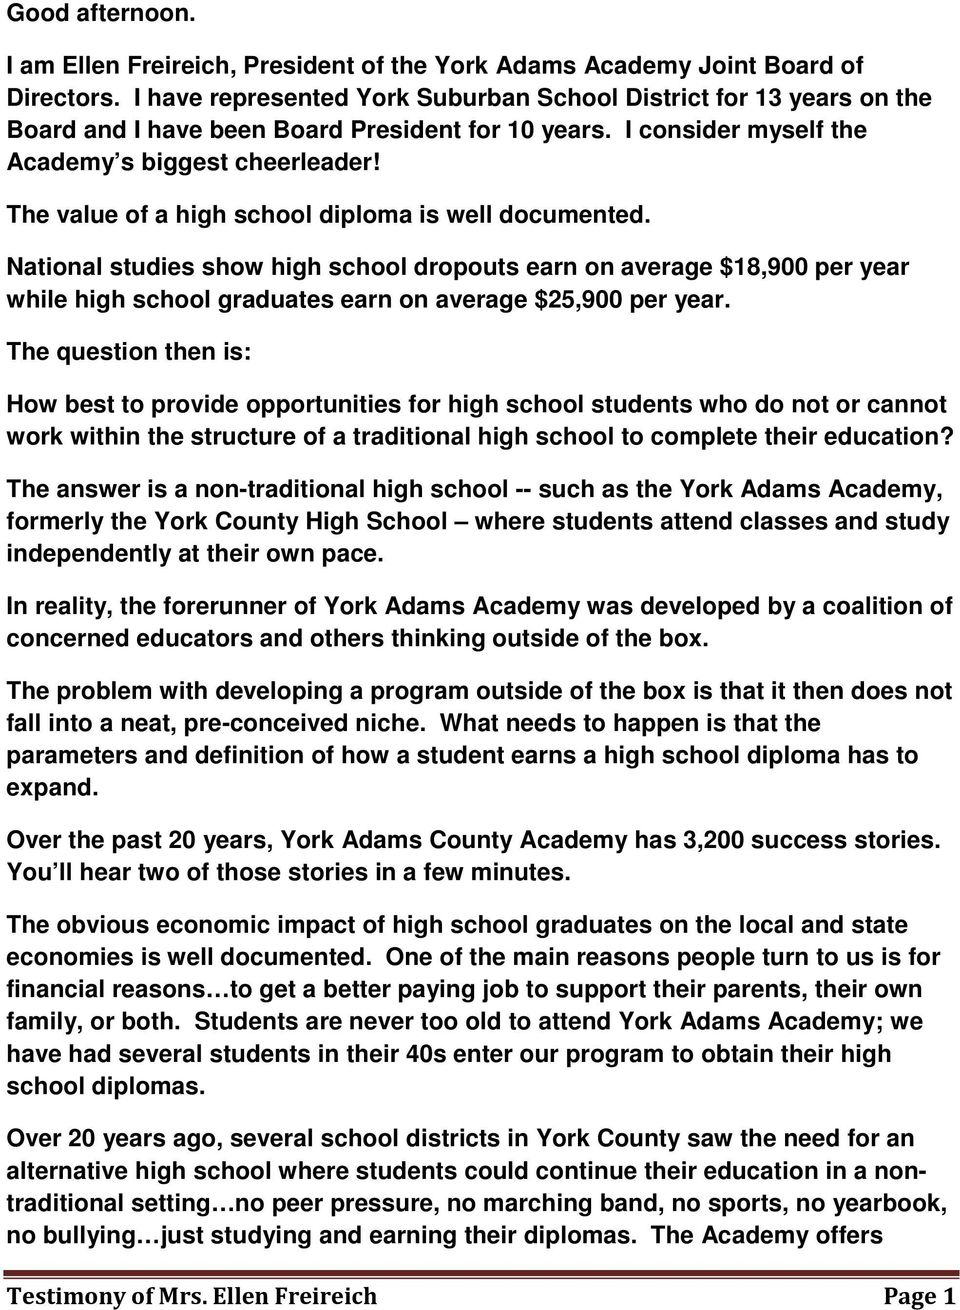 The value of a high school diploma is well documented. National studies show high school dropouts earn on average $18,900 per year while high school graduates earn on average $25,900 per year.